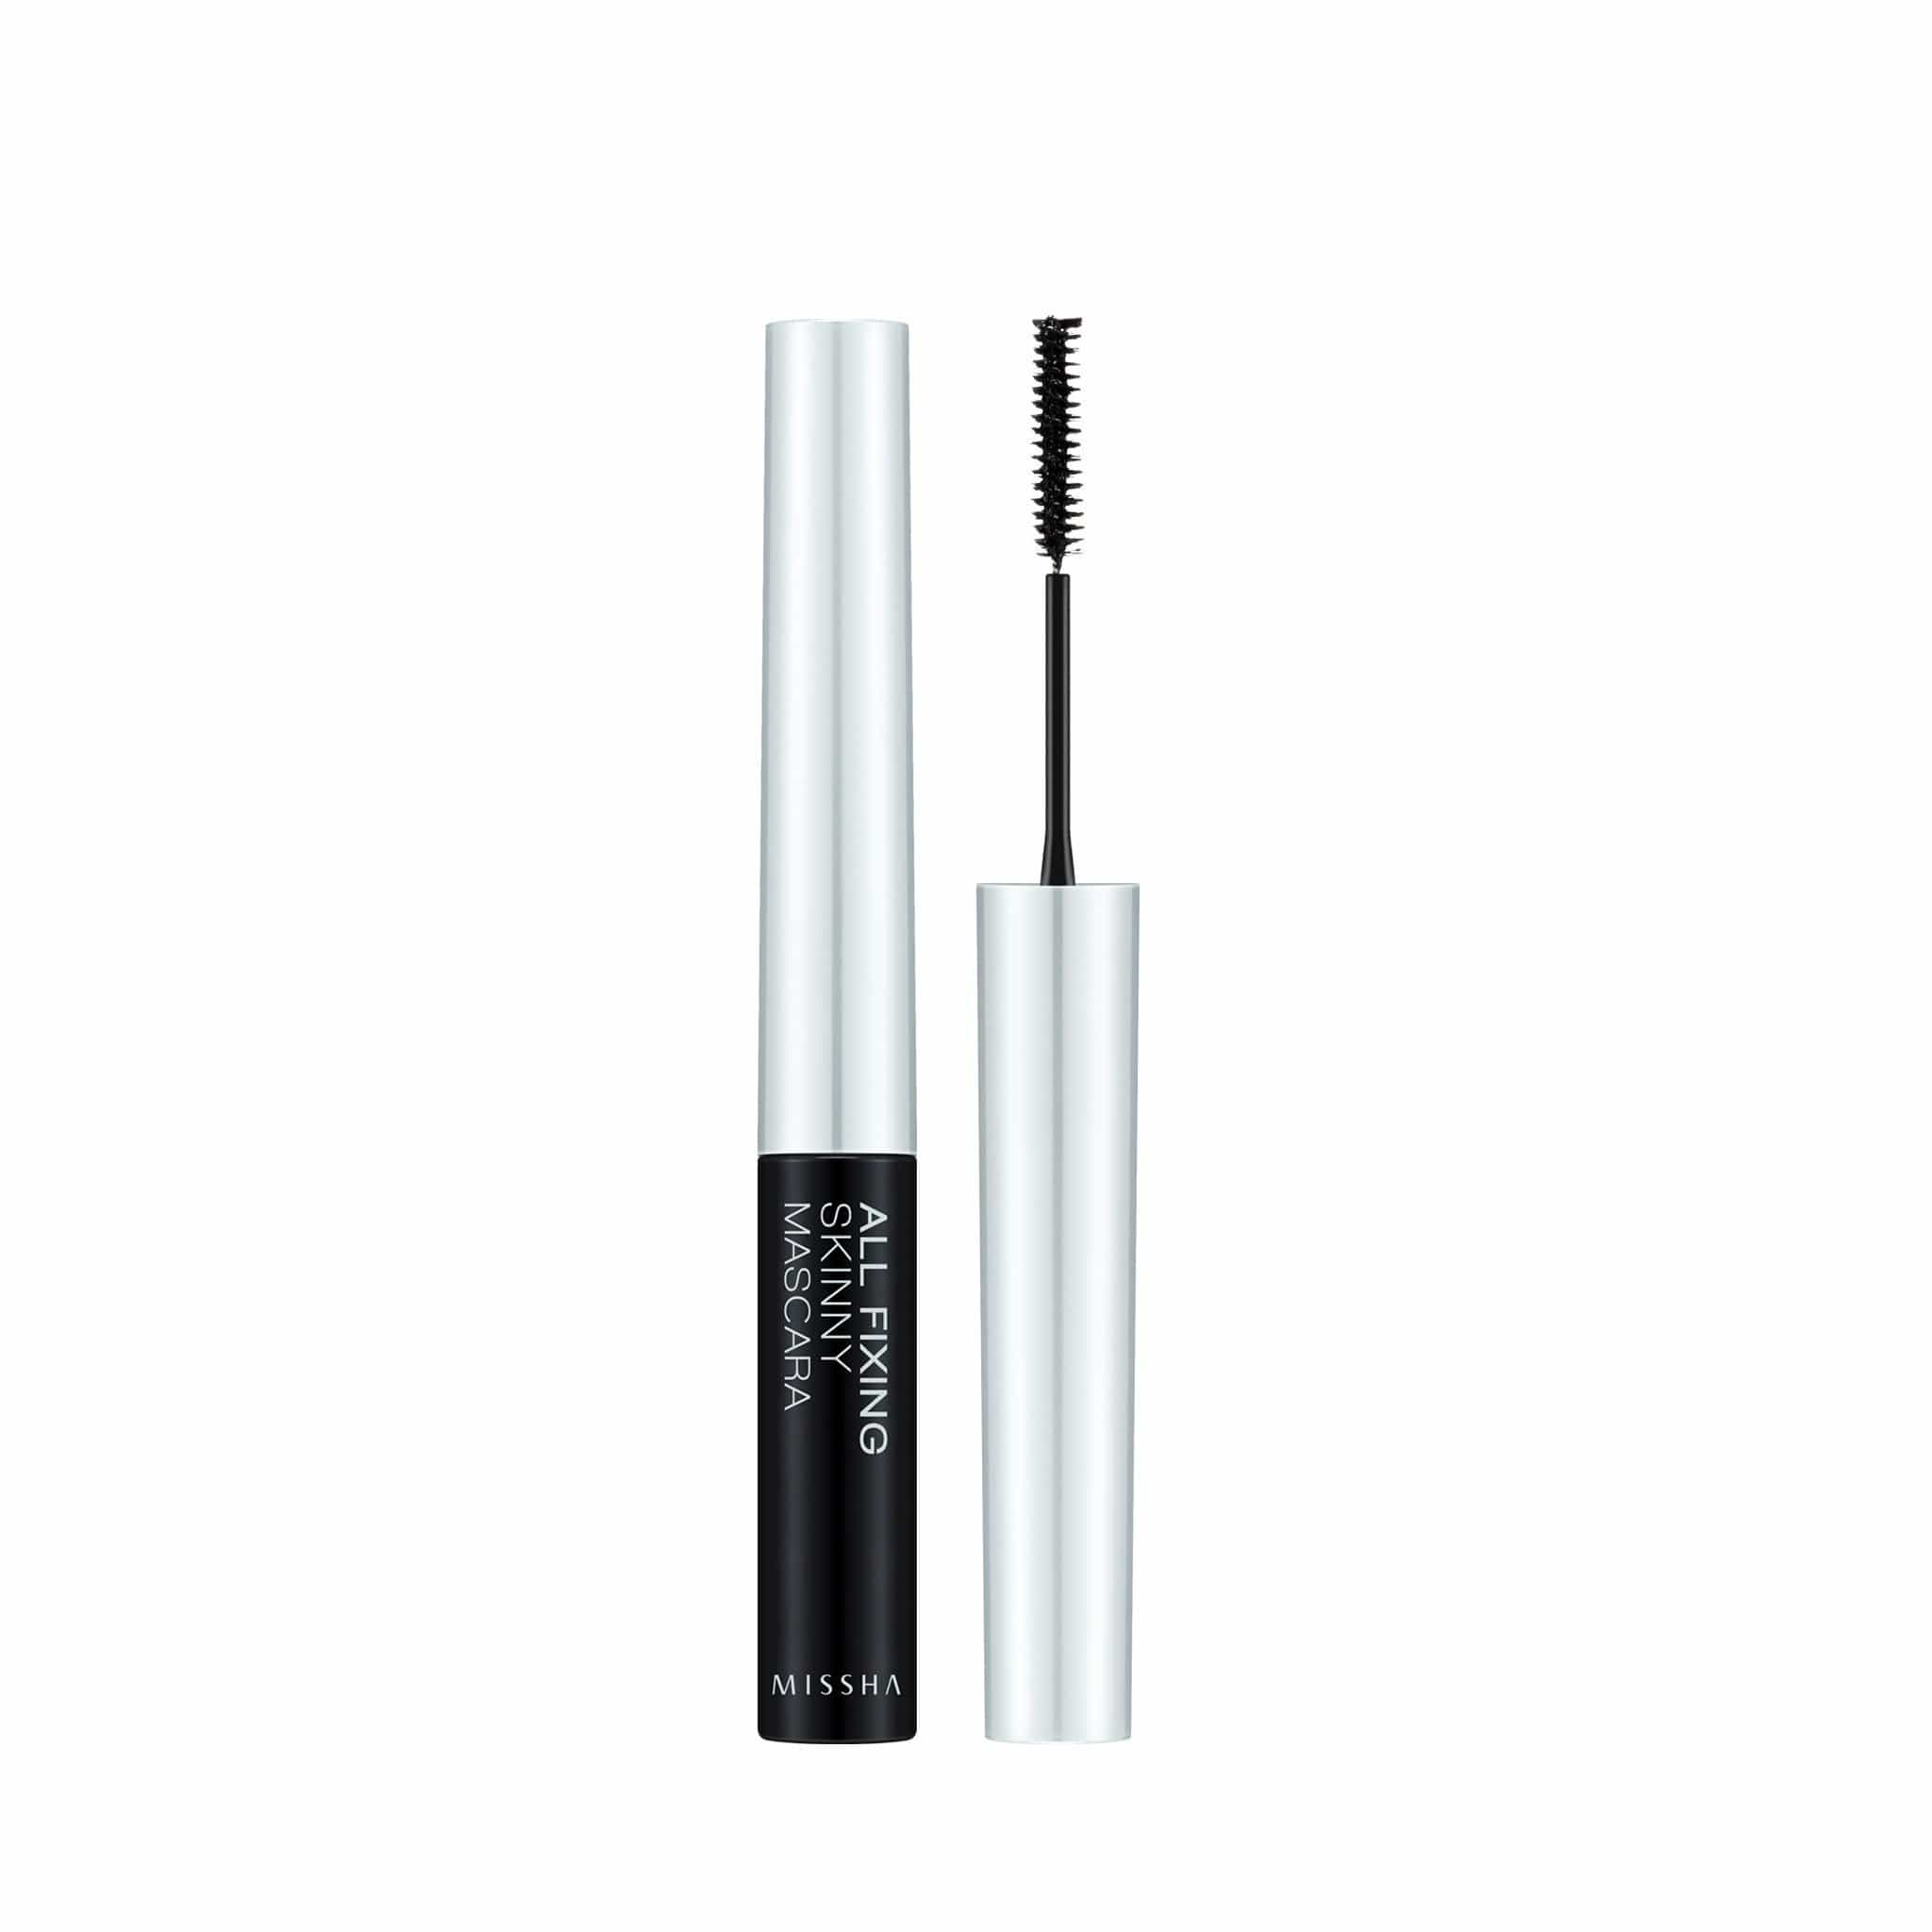 ALL FIXING SKINNY MASCARA - MISSHA